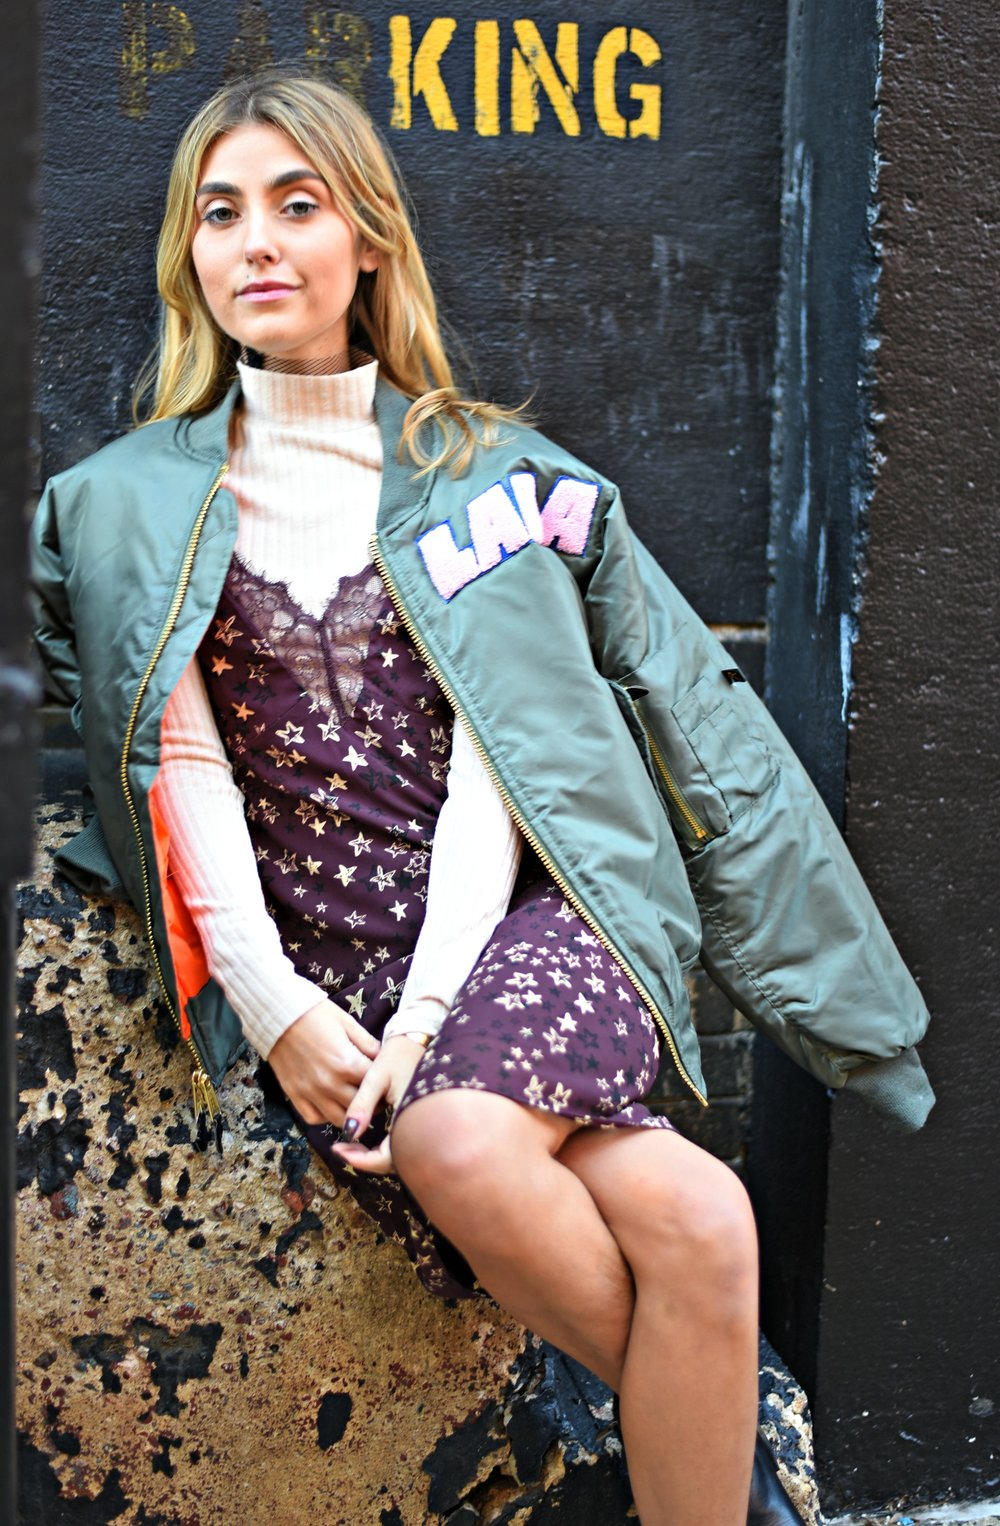 CHARLOTTE BICKLEY YIN 2MY YANG SISTER FASHION BLOGGERS NYC UNEMPLOYED DENIM PERSONALIZED BOMBER JACKET POST 7.jpg